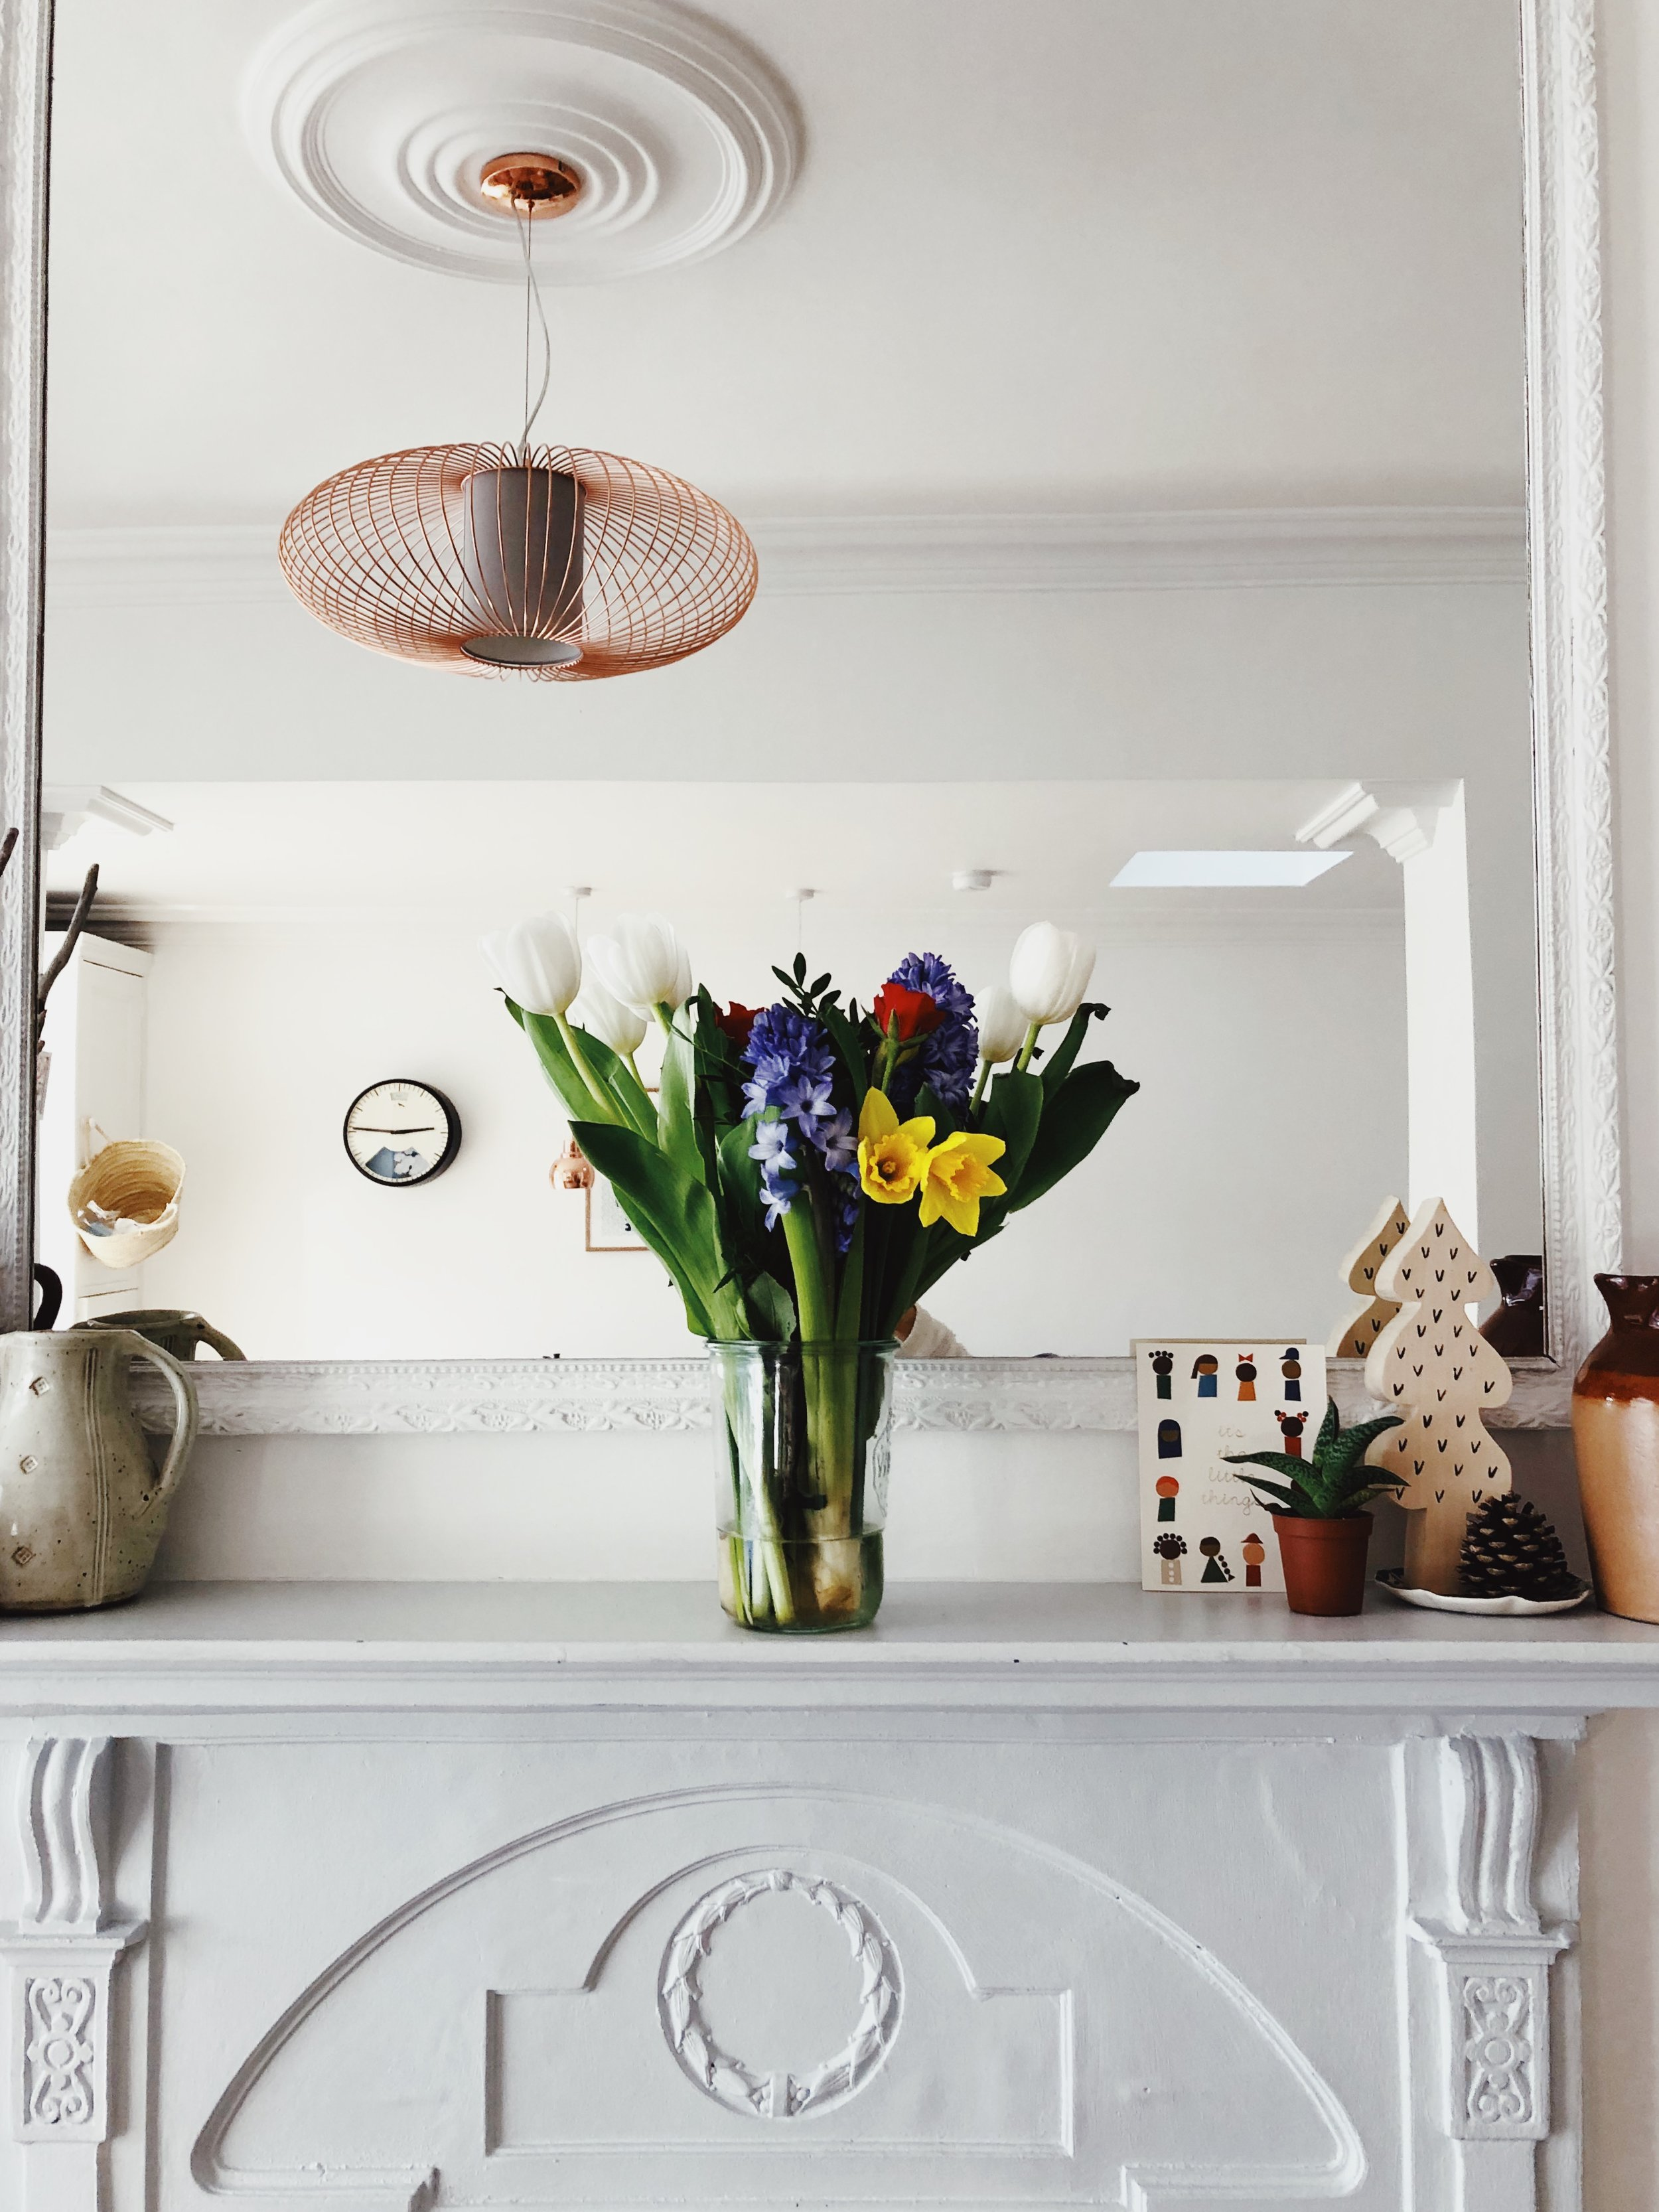 Flowers on a mantlepiece. Spring vignette. Spring cleaning. An essay on tidying up and tips to make spring cleaning easy. Decluttering practical life hacks. More on OurStoryTime.co.uk